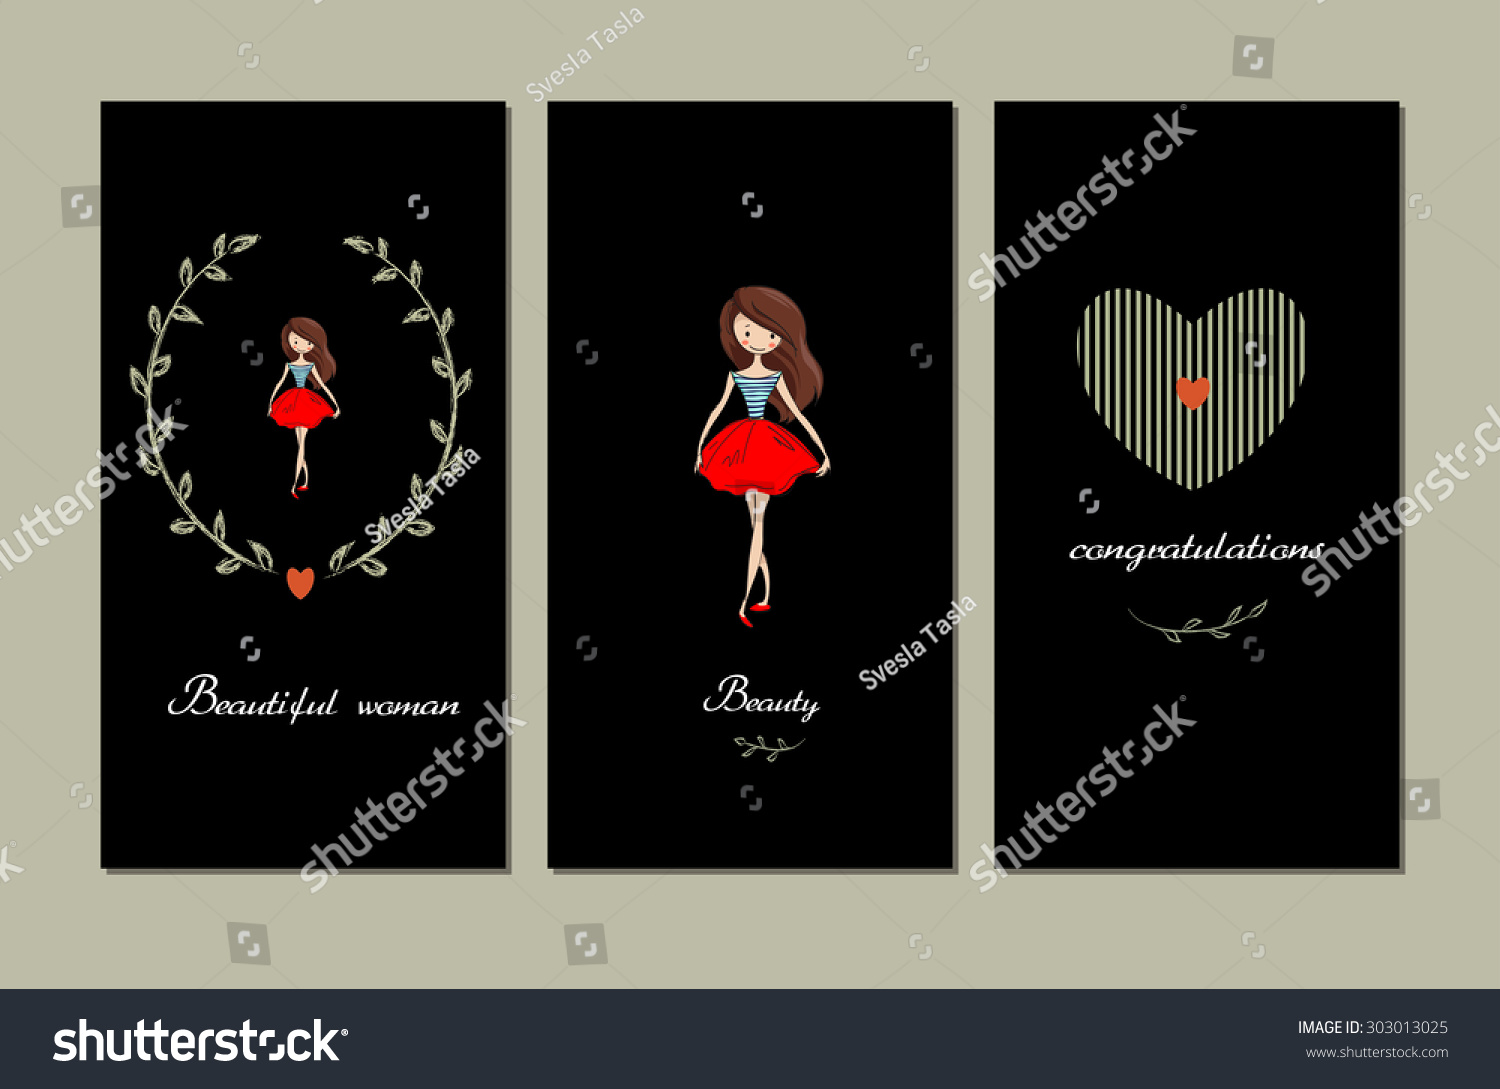 Handsketched Templates Beautiful Girl Suitable Ads Stock Vector